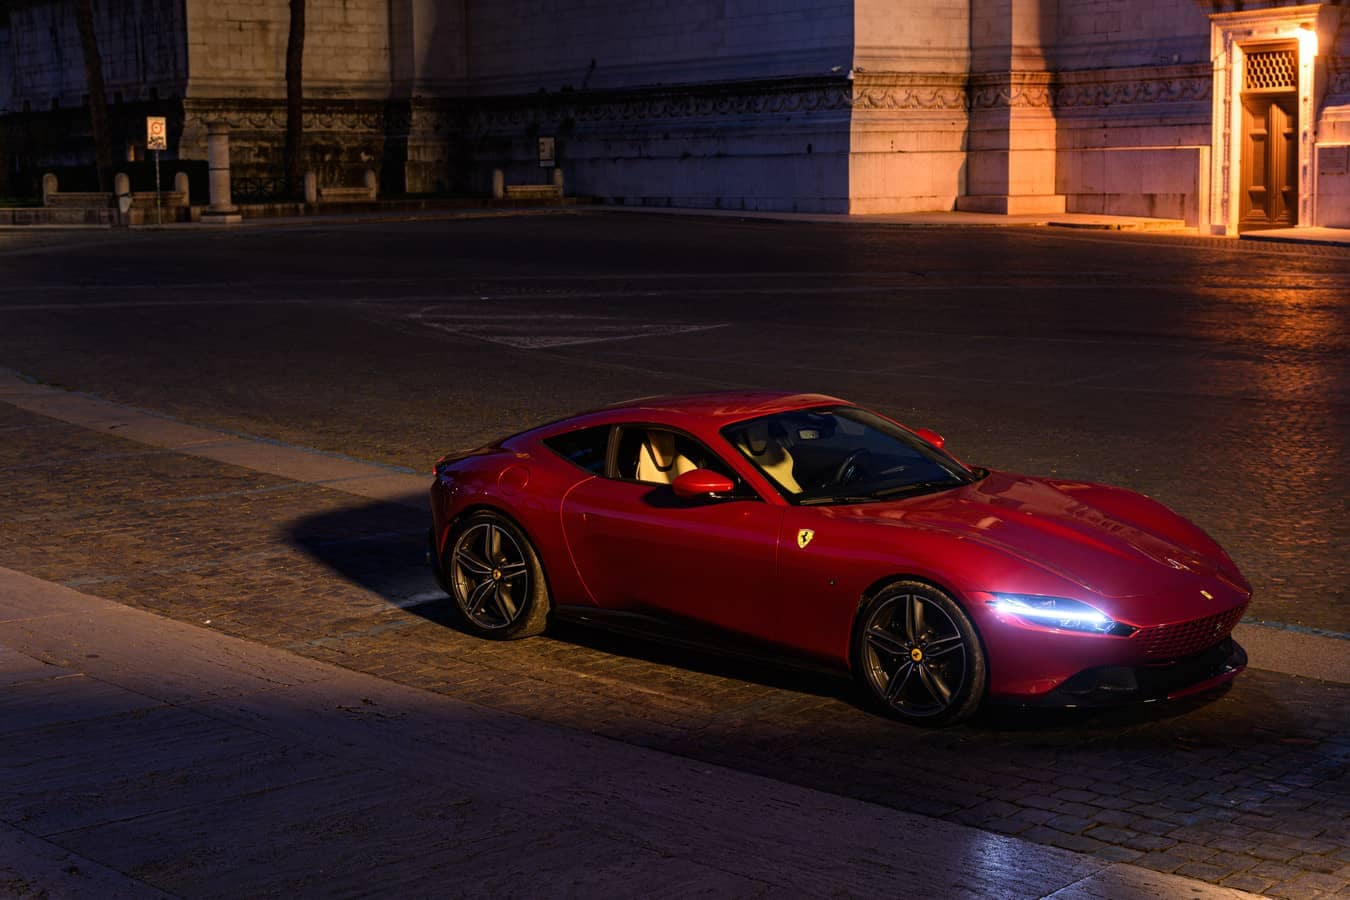 Ferrari Roma parked outside at night